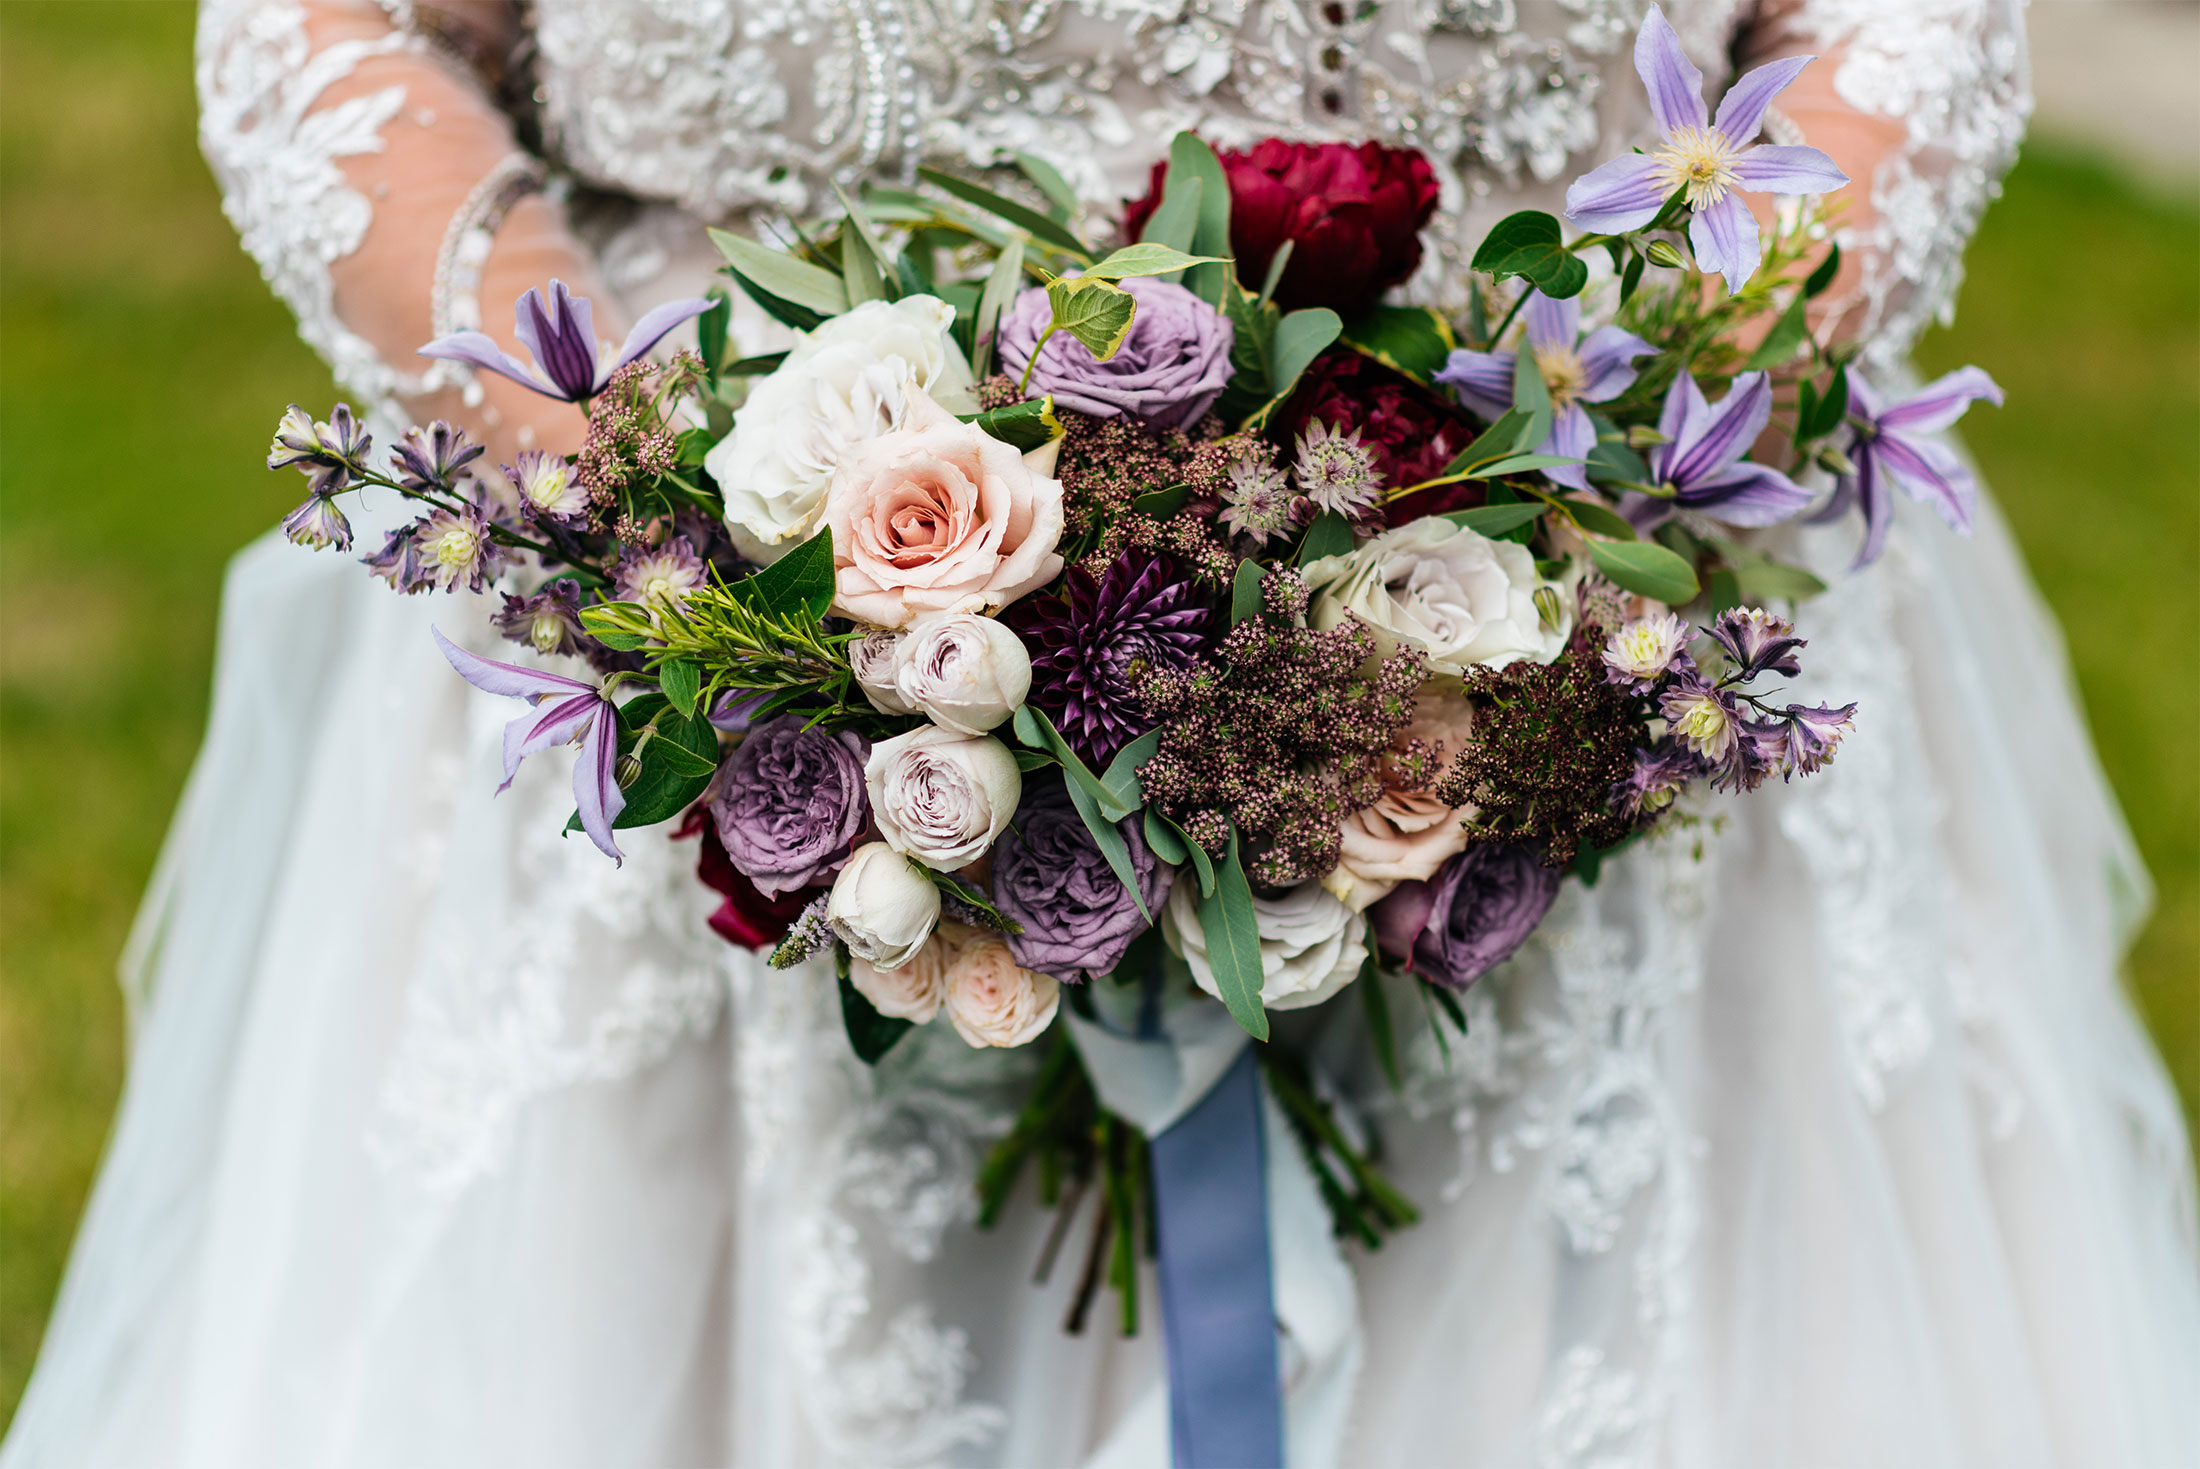 Kilruddery House Wedding Flowers0088.jpg